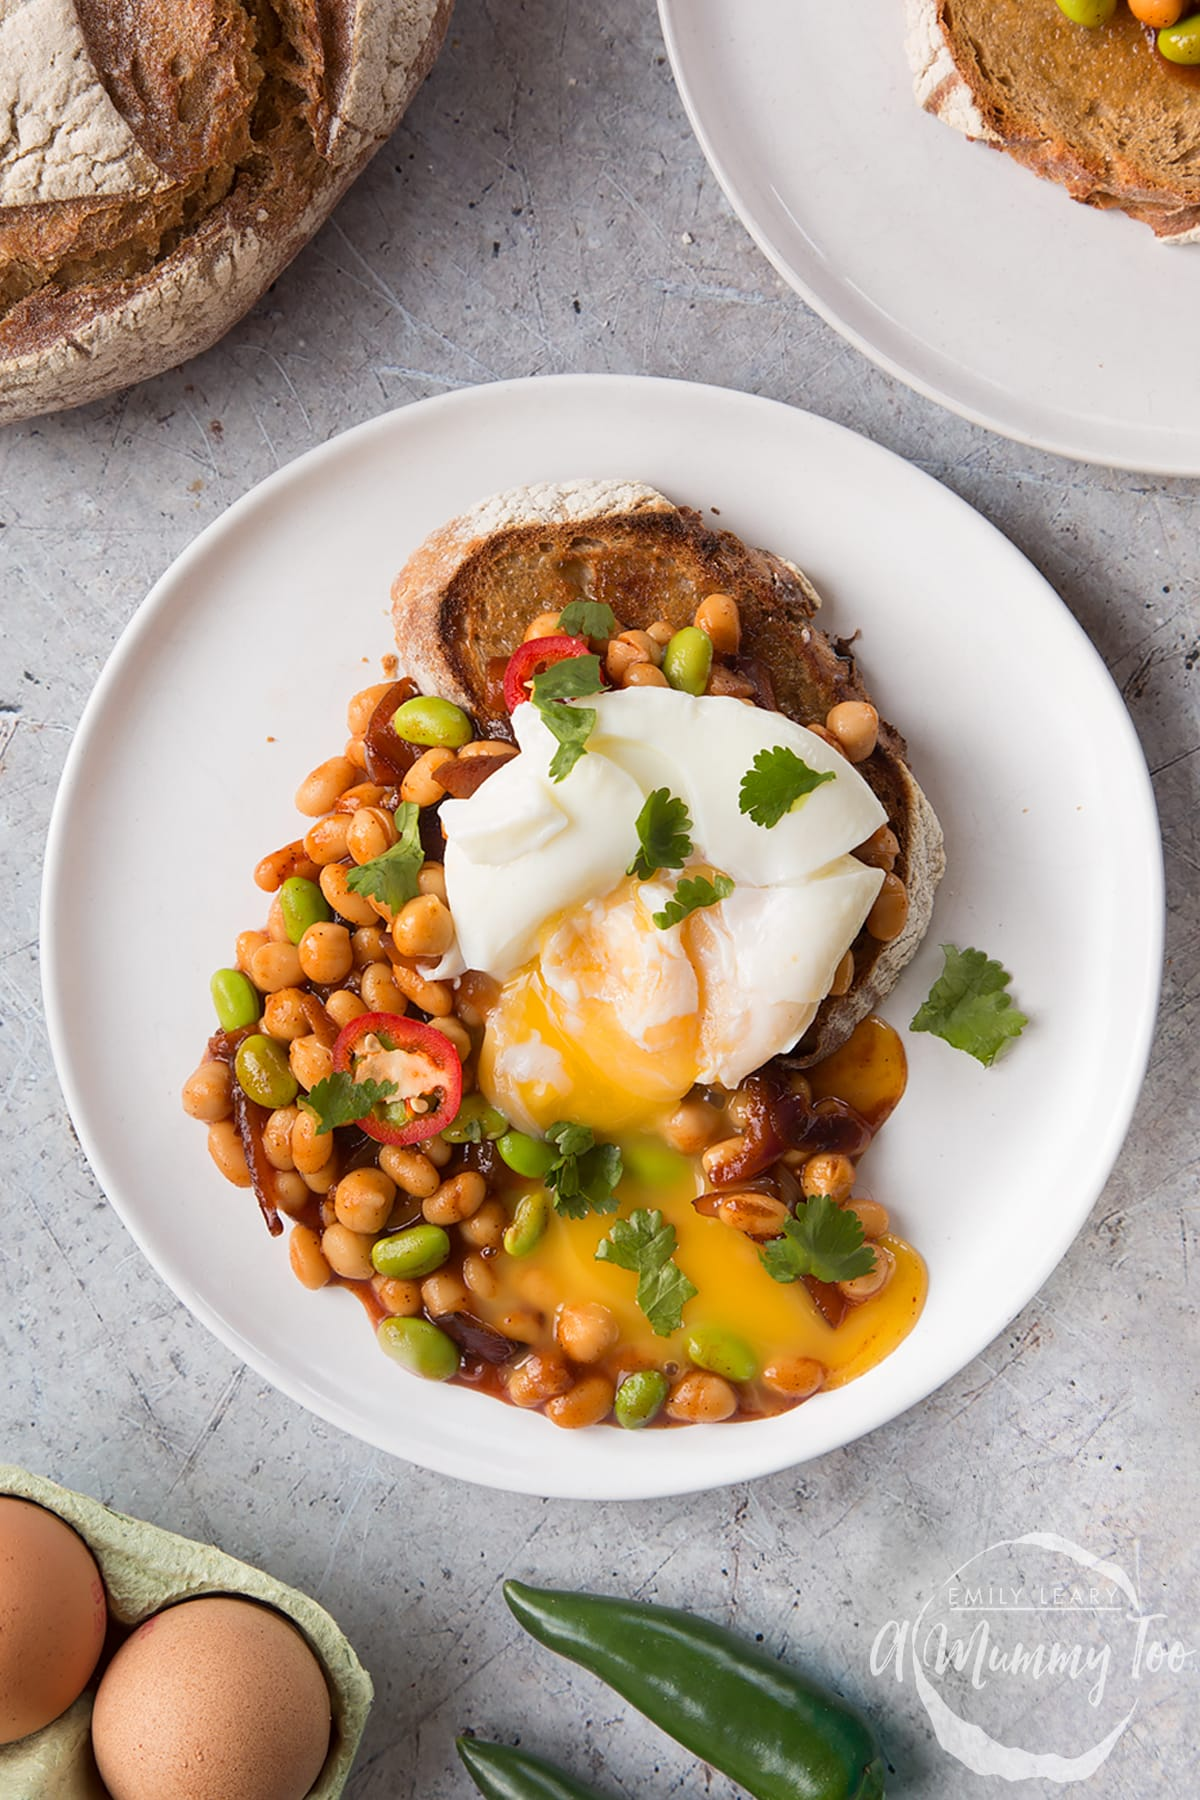 Breakfast beans with chilli, chickpeas and edamame served on sour dough toast with a poached egg on top.